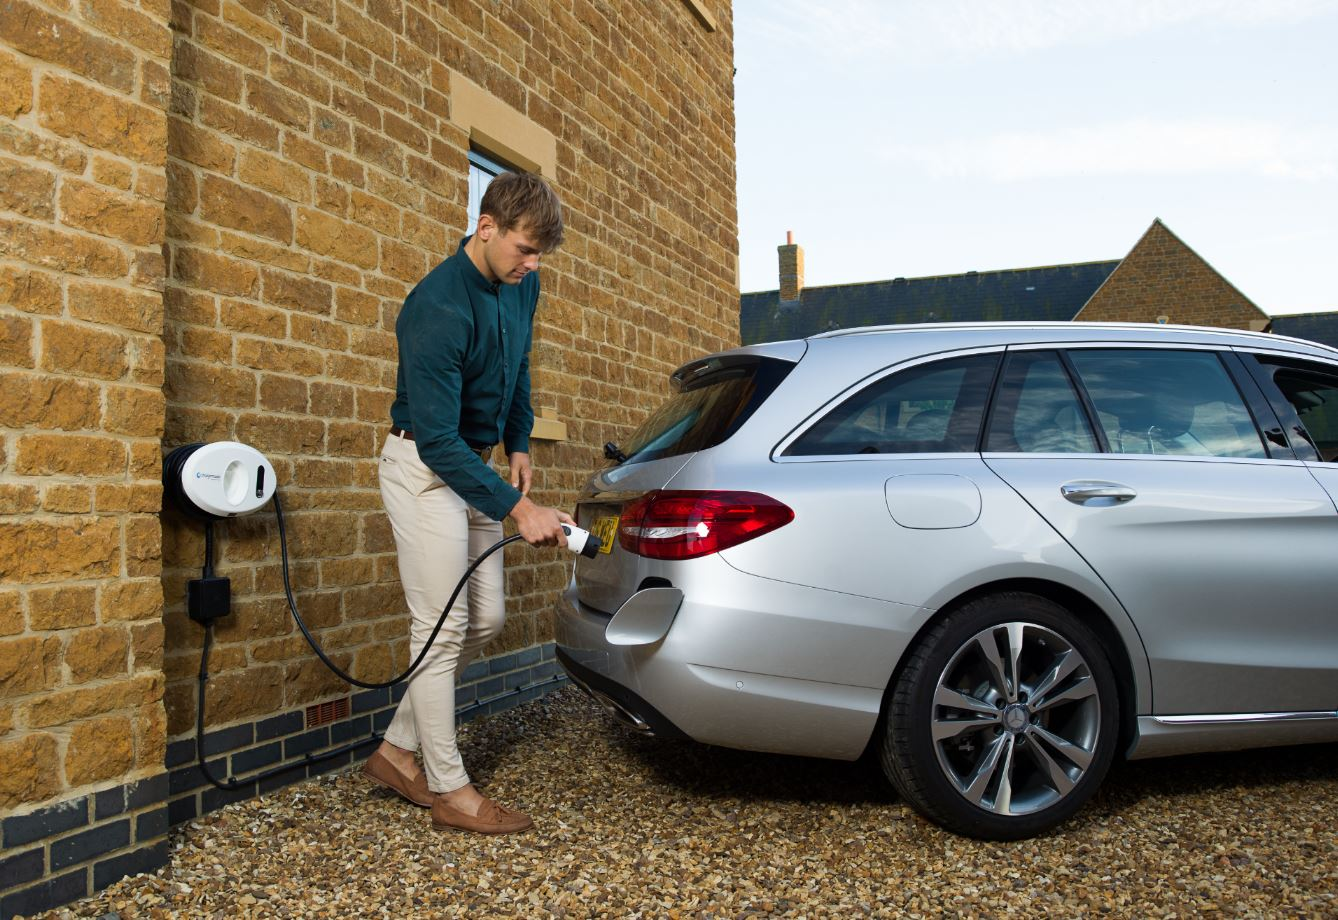 Mercedes plugged in to tethered home charge unit